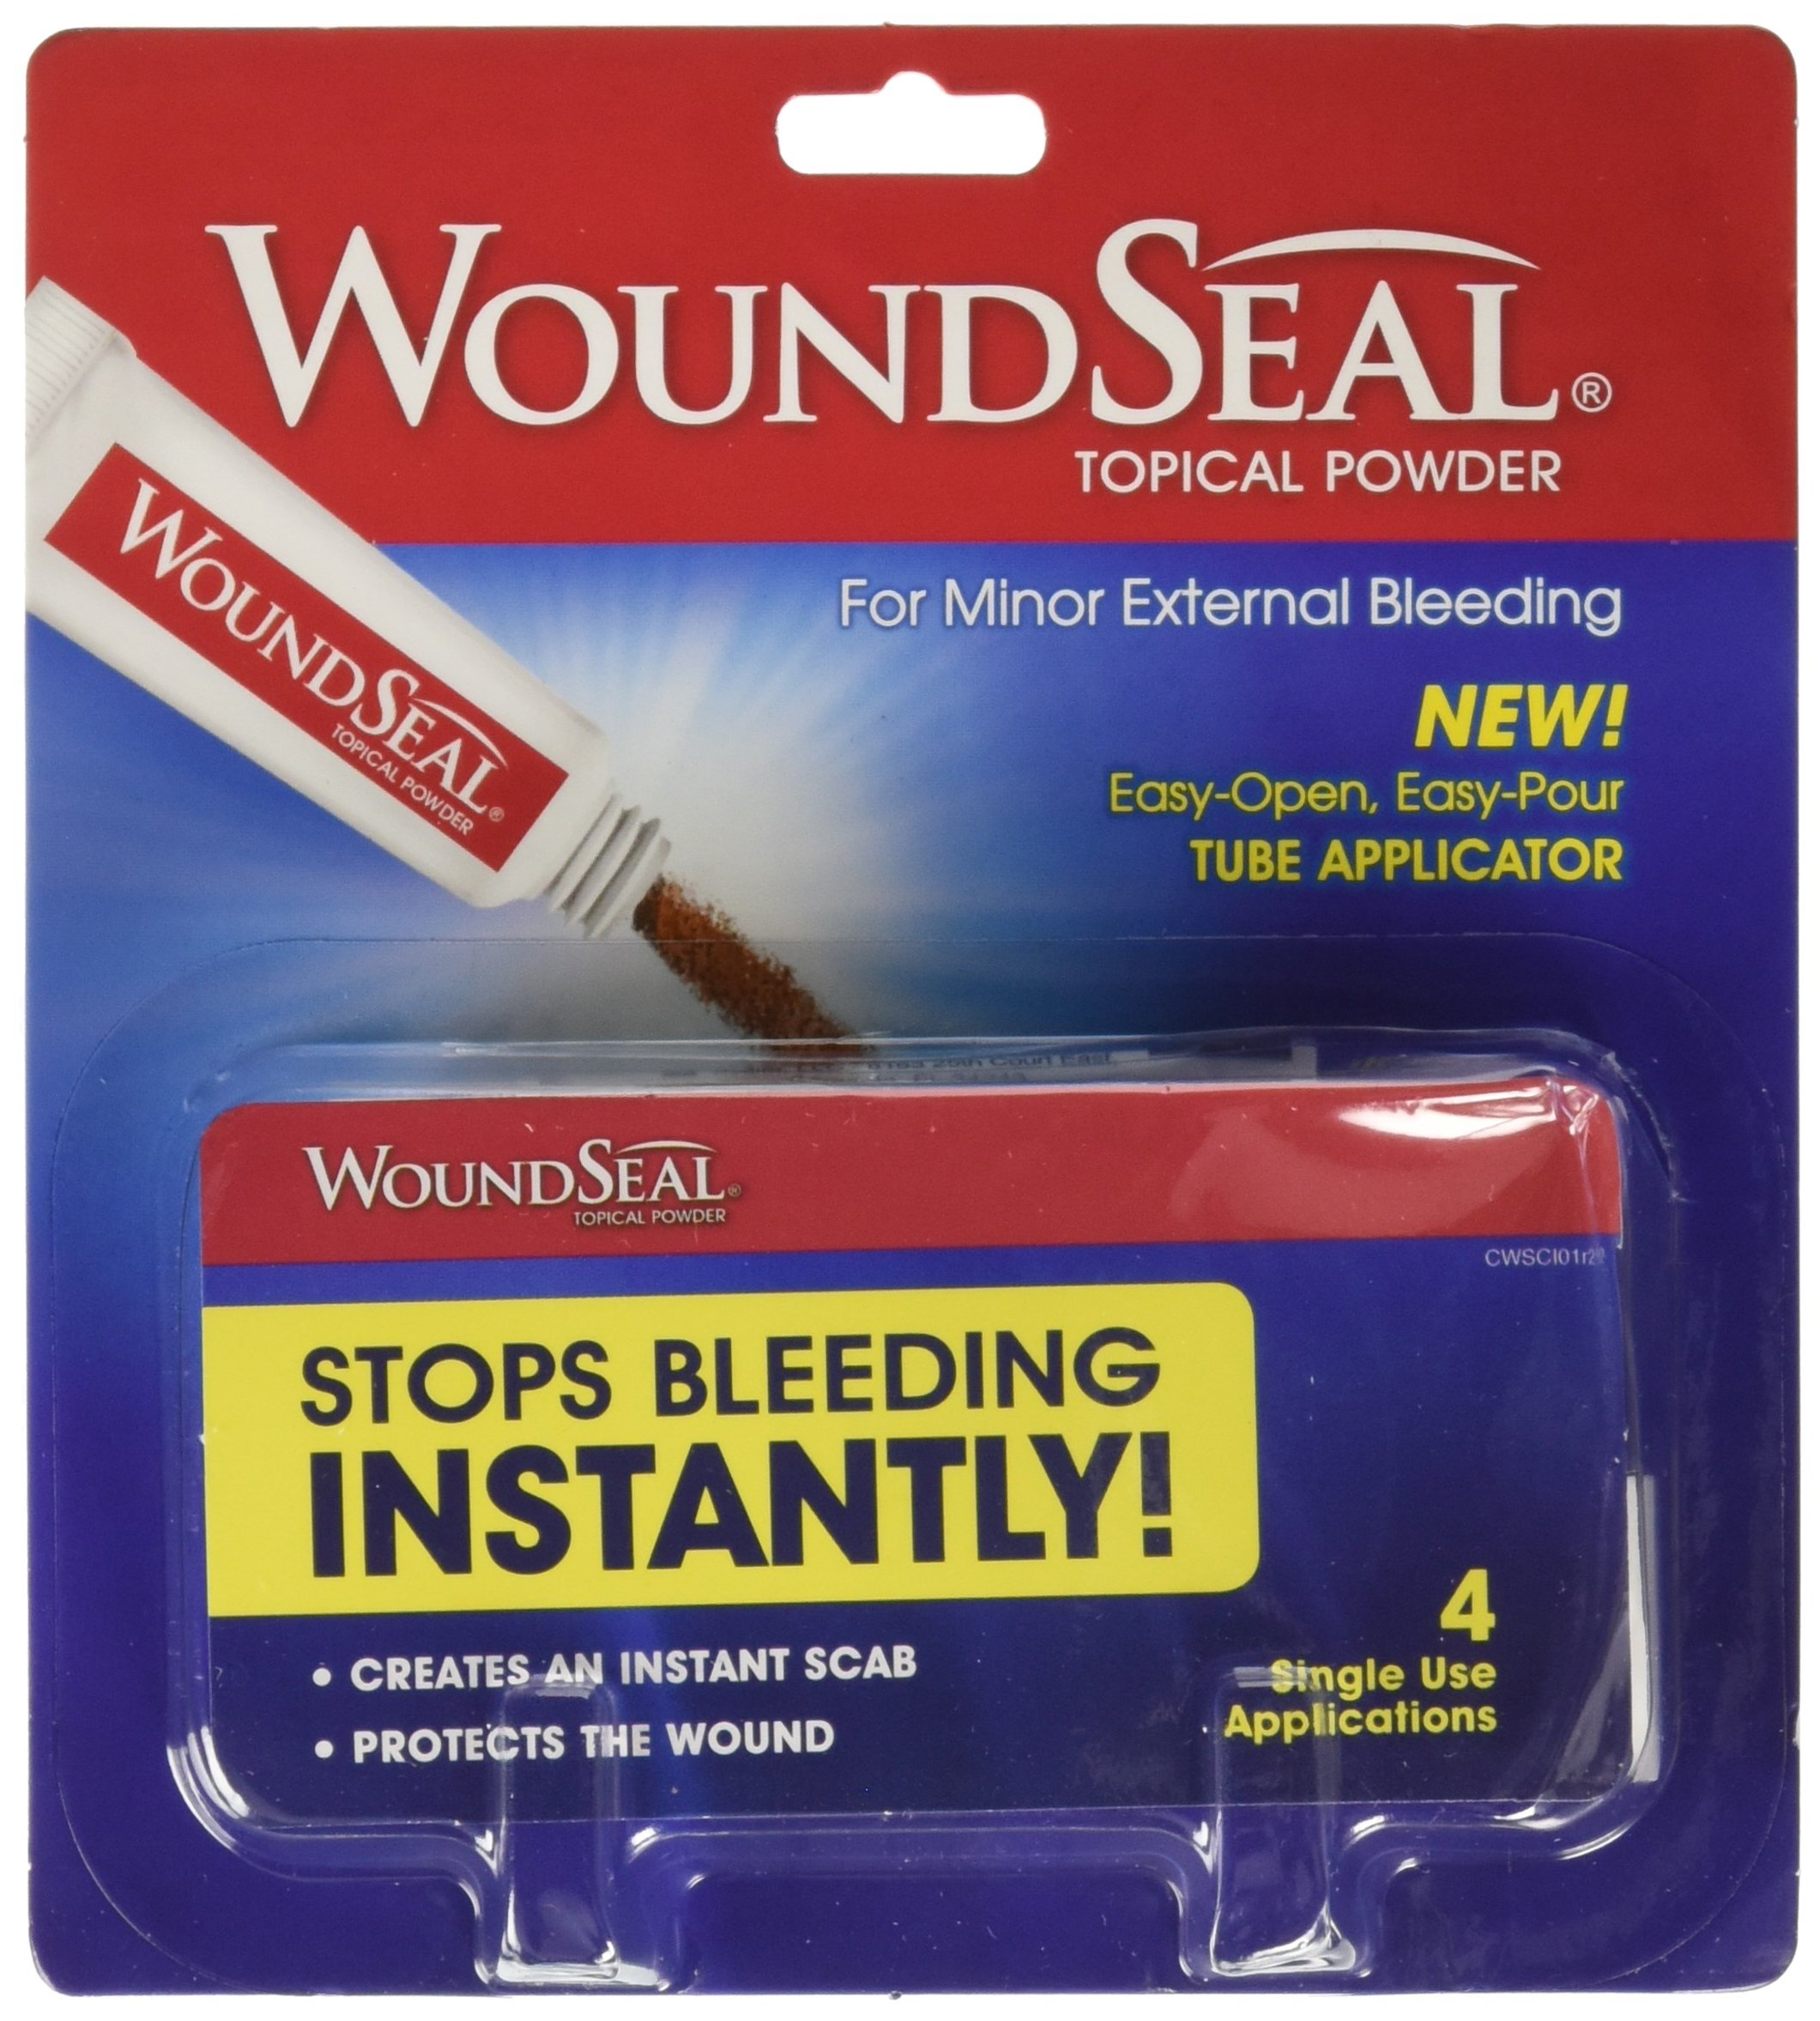 WoundSeal Powder, 4 ea (Pack of 2) by Biolife, LLC.